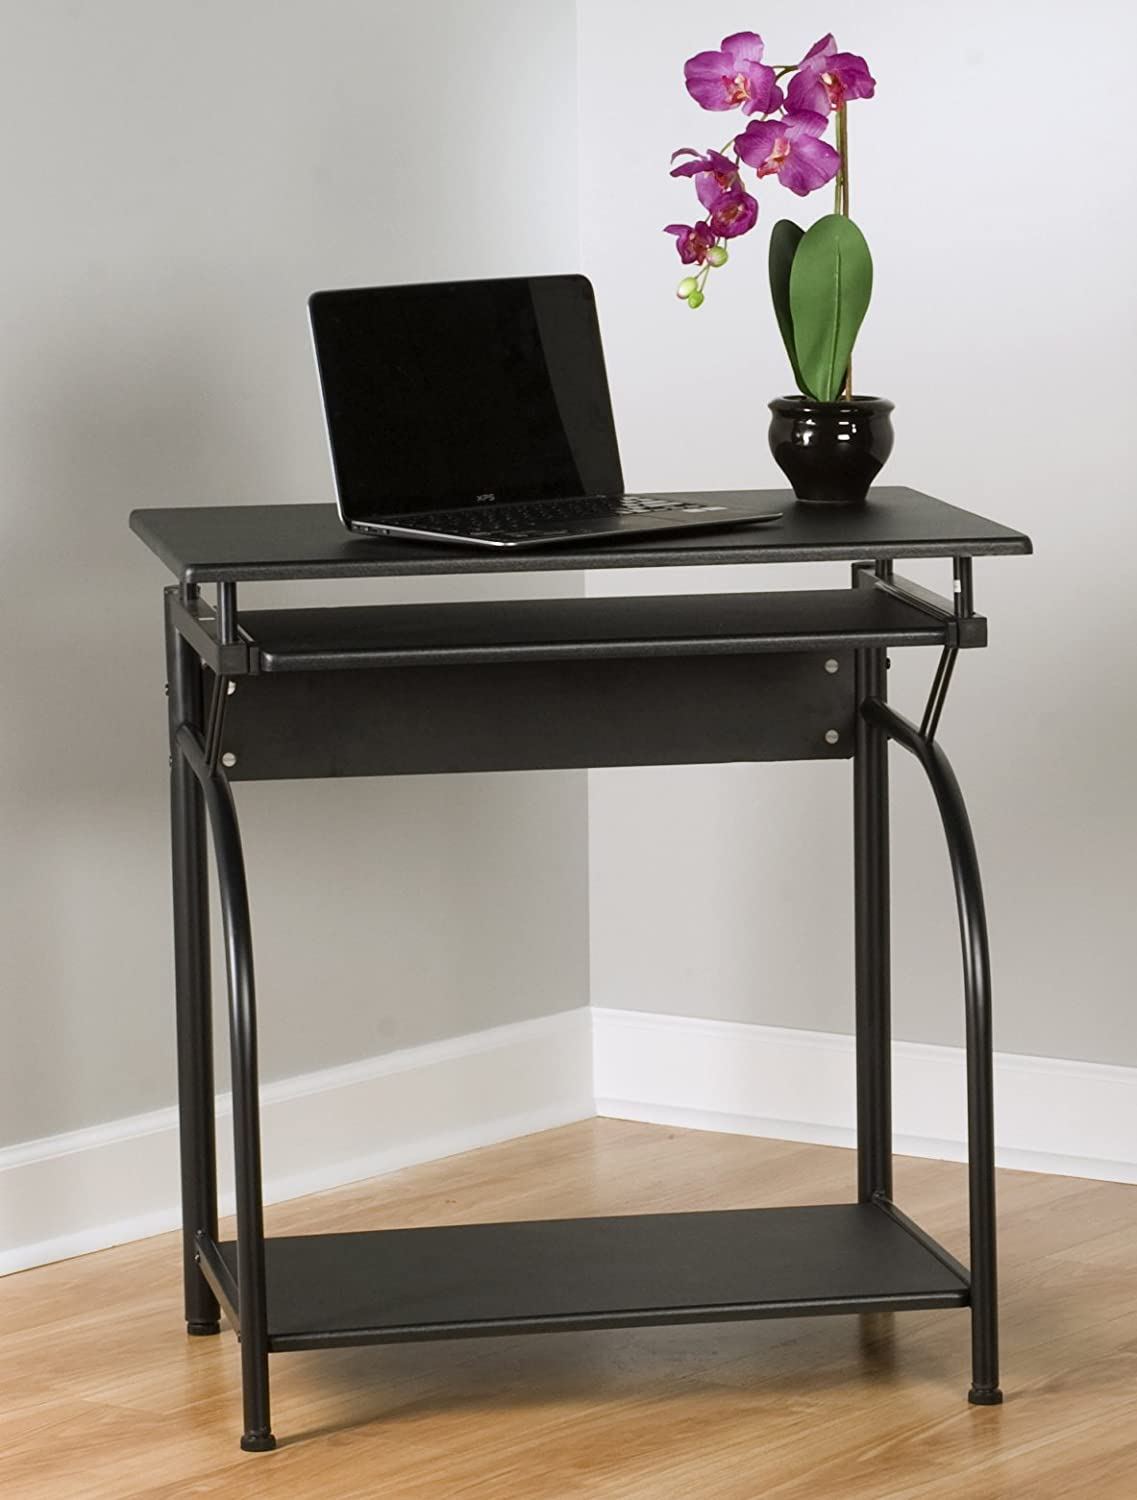 computer desk workstation shelf pull out keyboard tray home office dorm college 761873125282 ebay. Black Bedroom Furniture Sets. Home Design Ideas